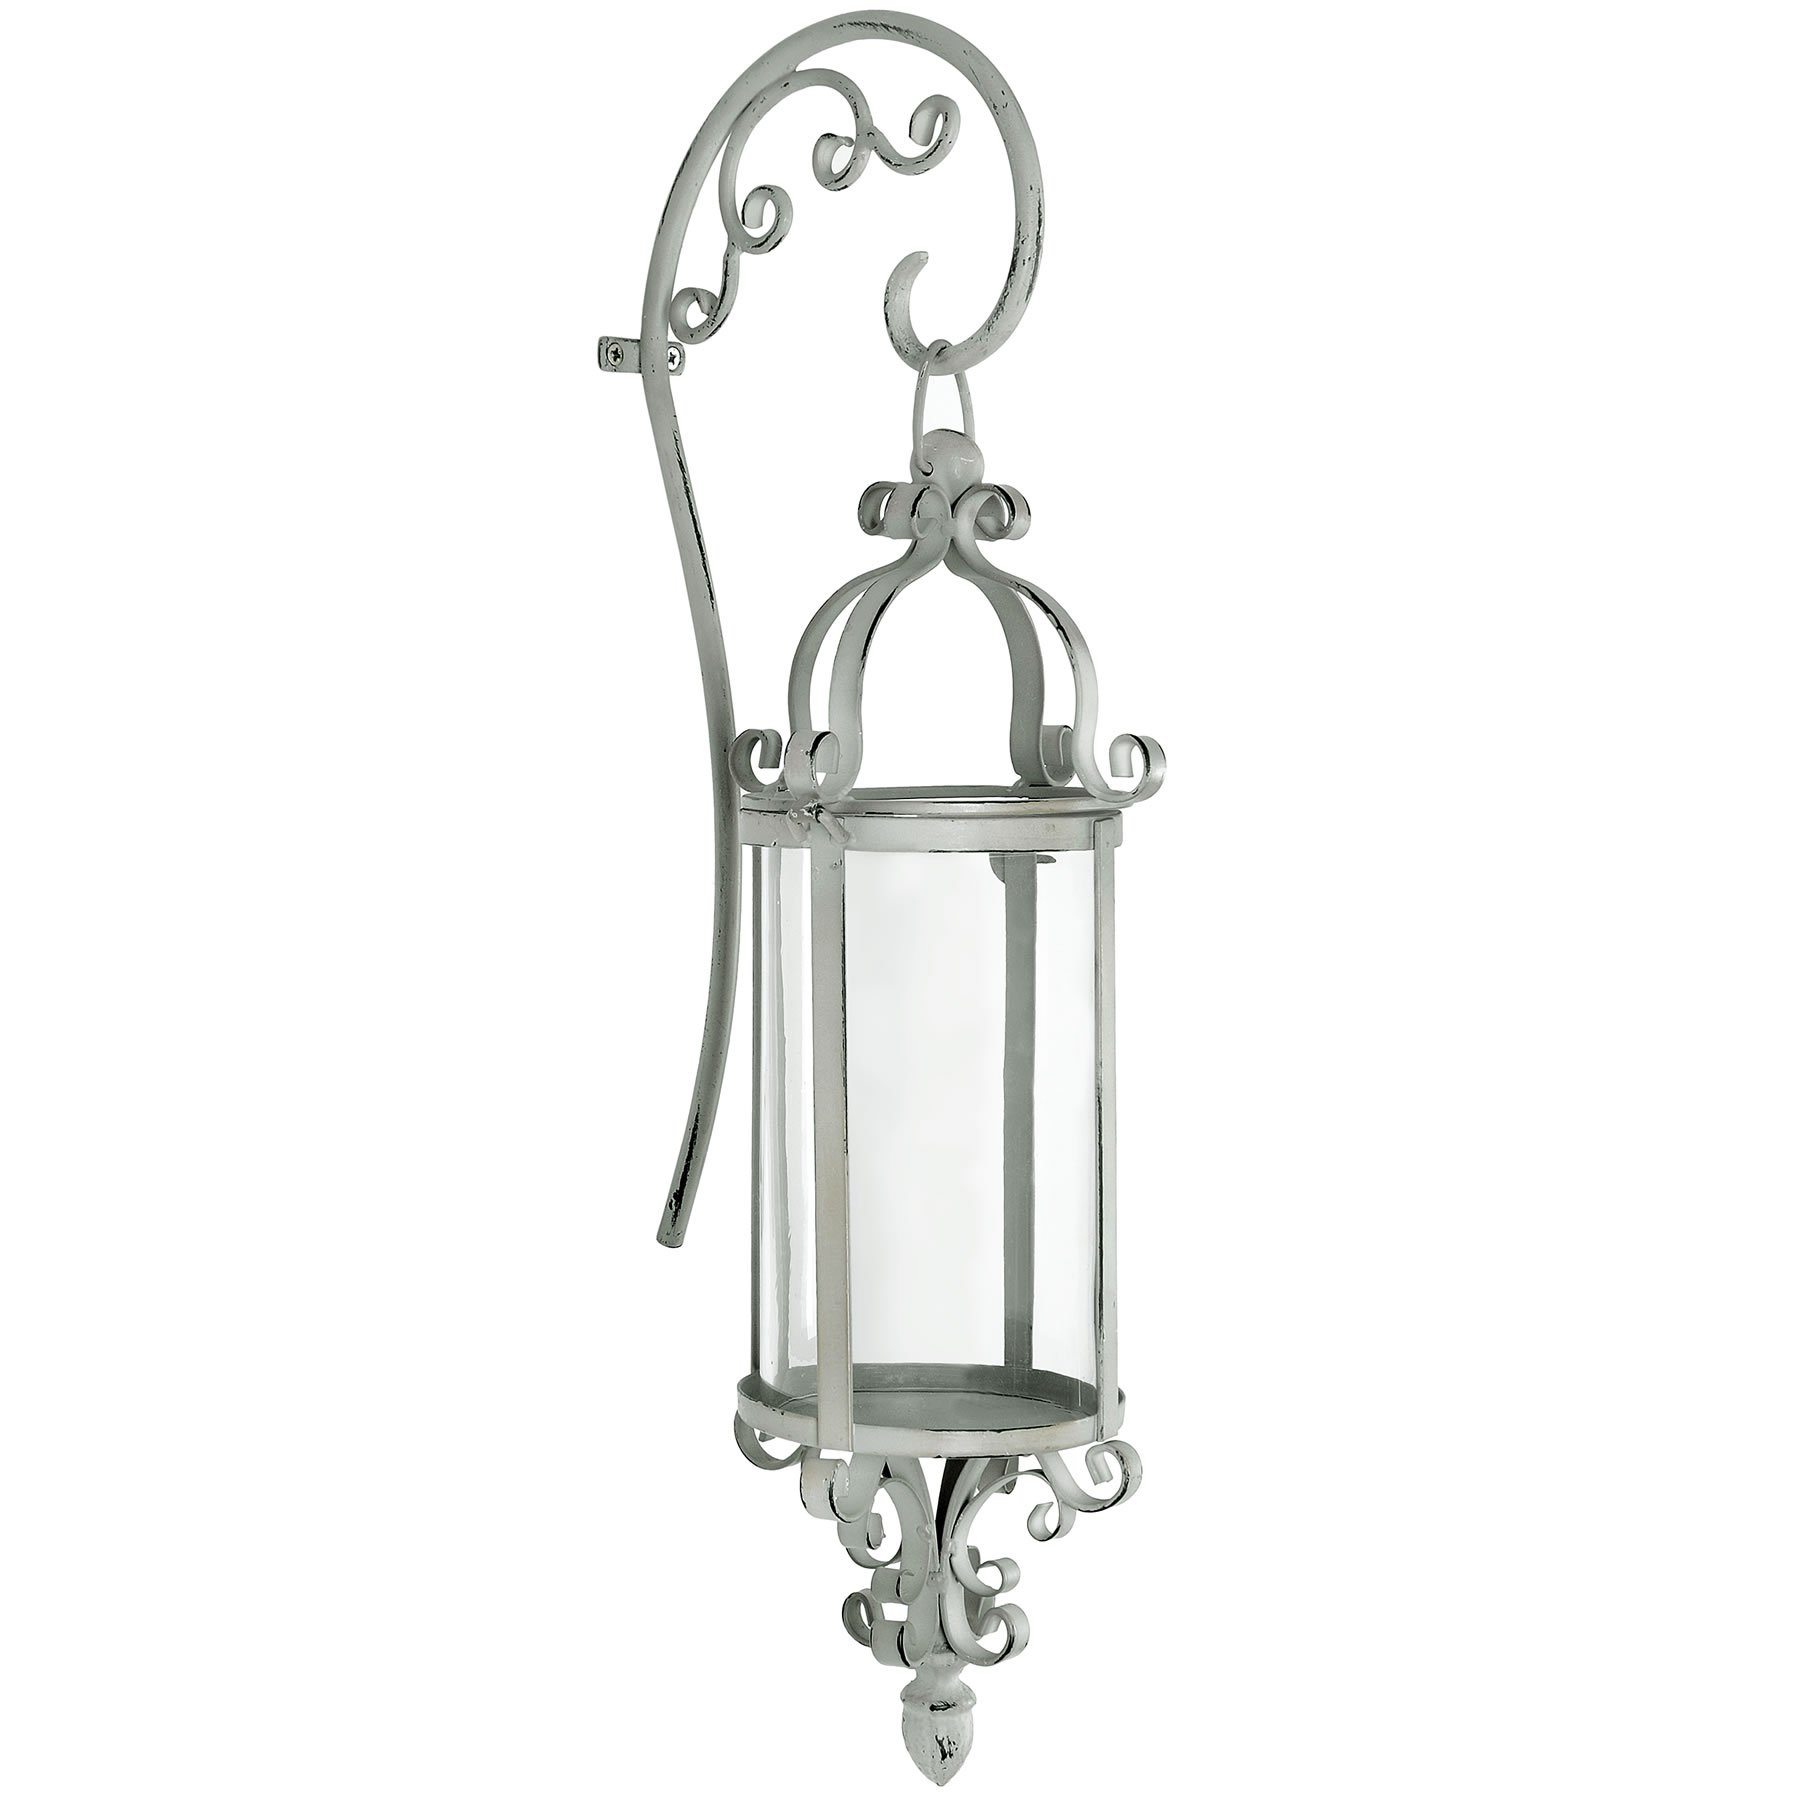 Wall candle lampbracket from hill interiors wall candle lampbracket aloadofball Choice Image